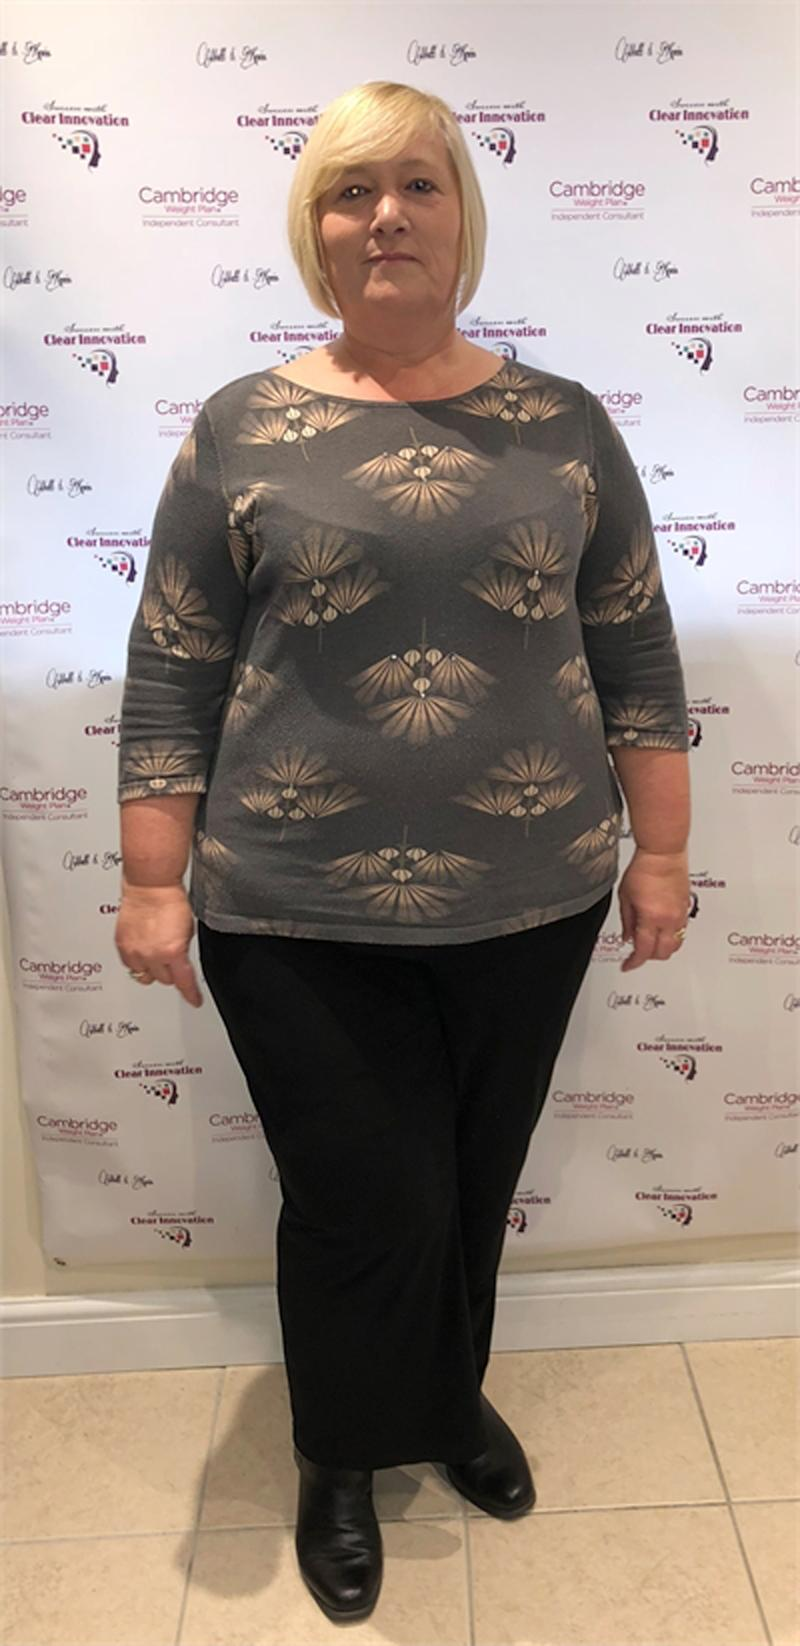 A morbidly obese mum has revealed how she managed to lose 54kg after struggling to fit into XXL size pants. Photo: Caters